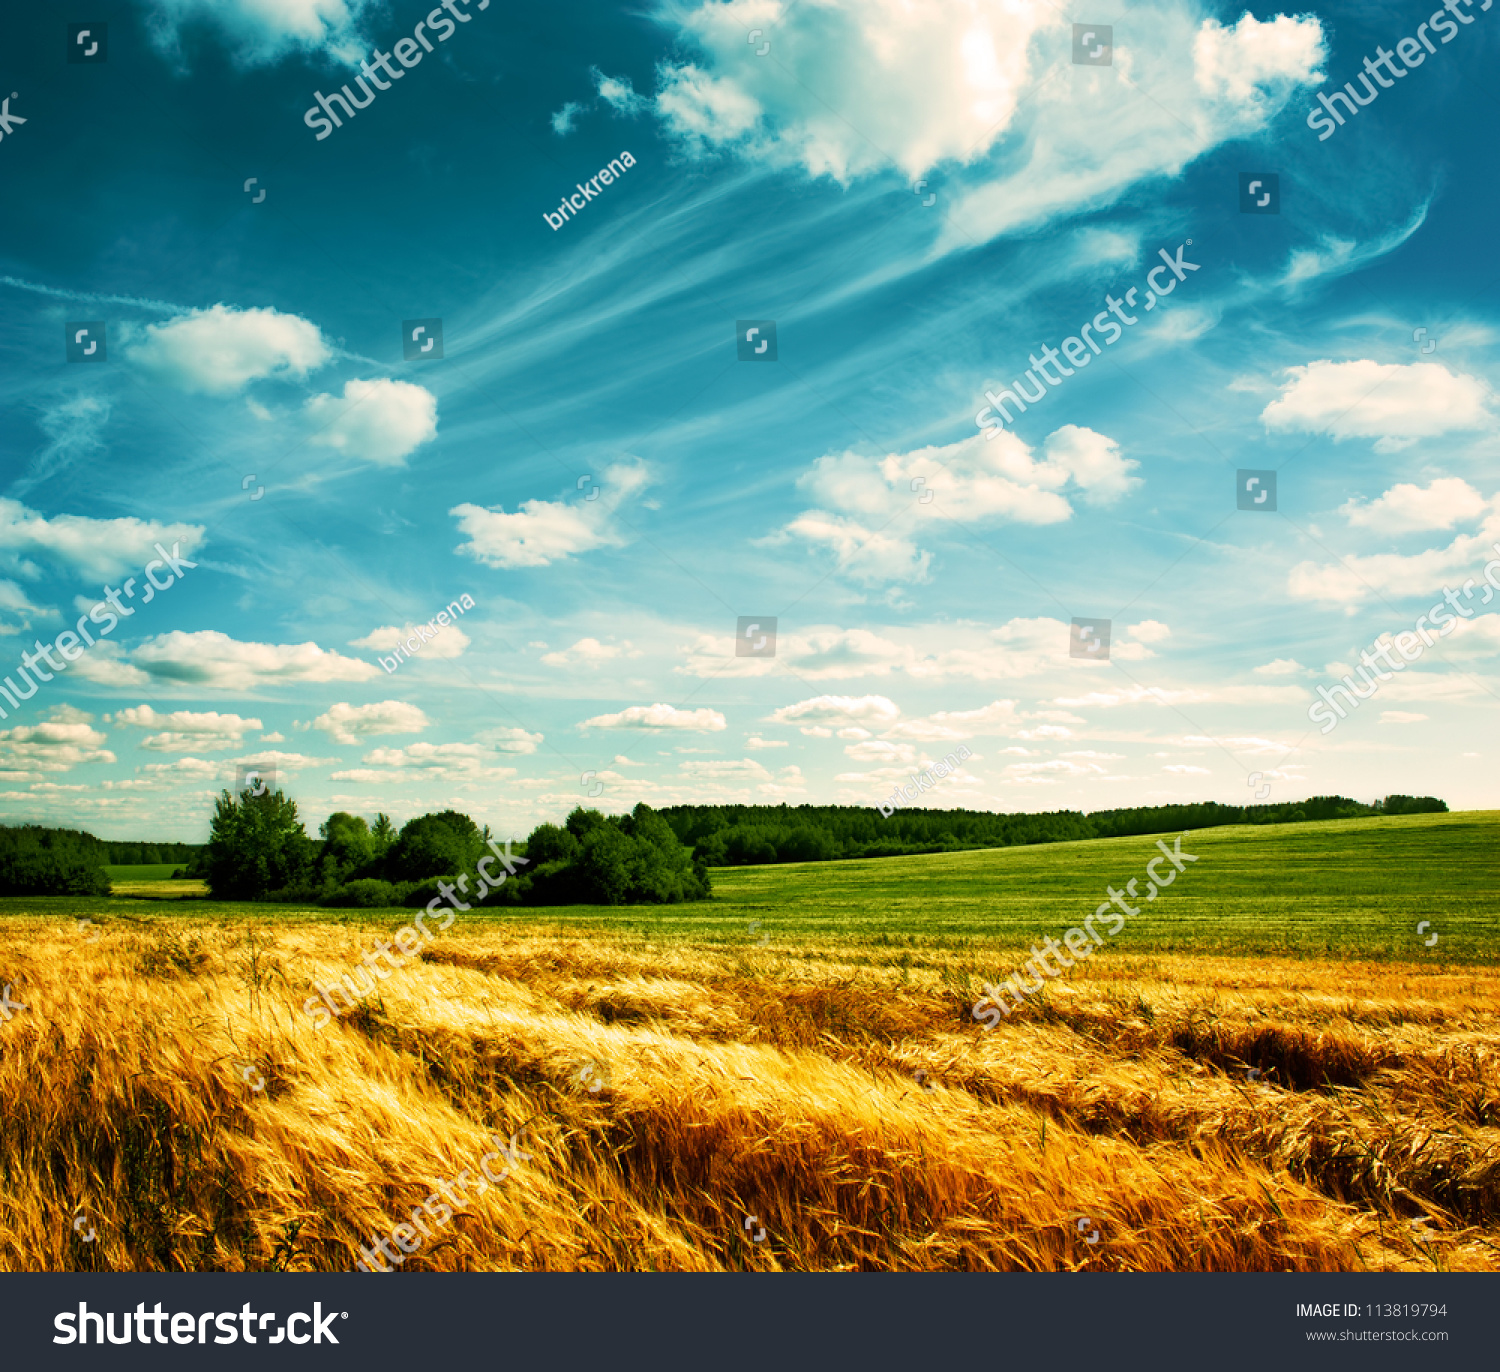 Summer Landscape with Wheat Field and Clouds #113819794